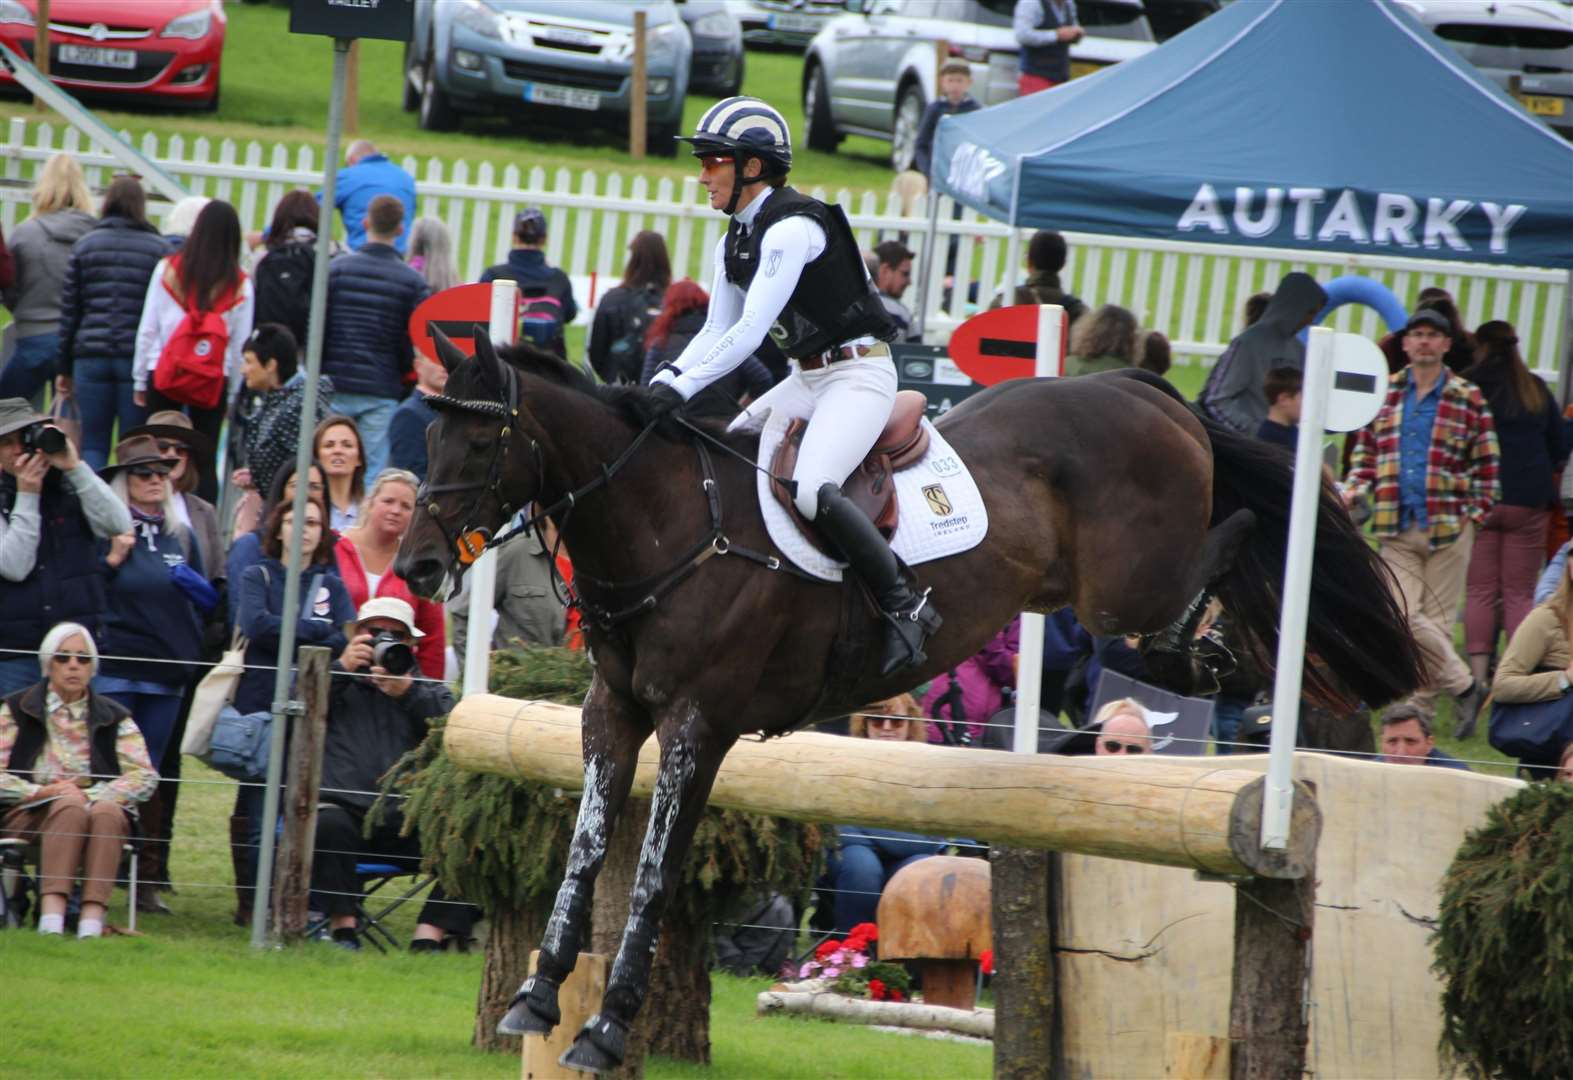 Former Burghley champion Powell pleased with showing